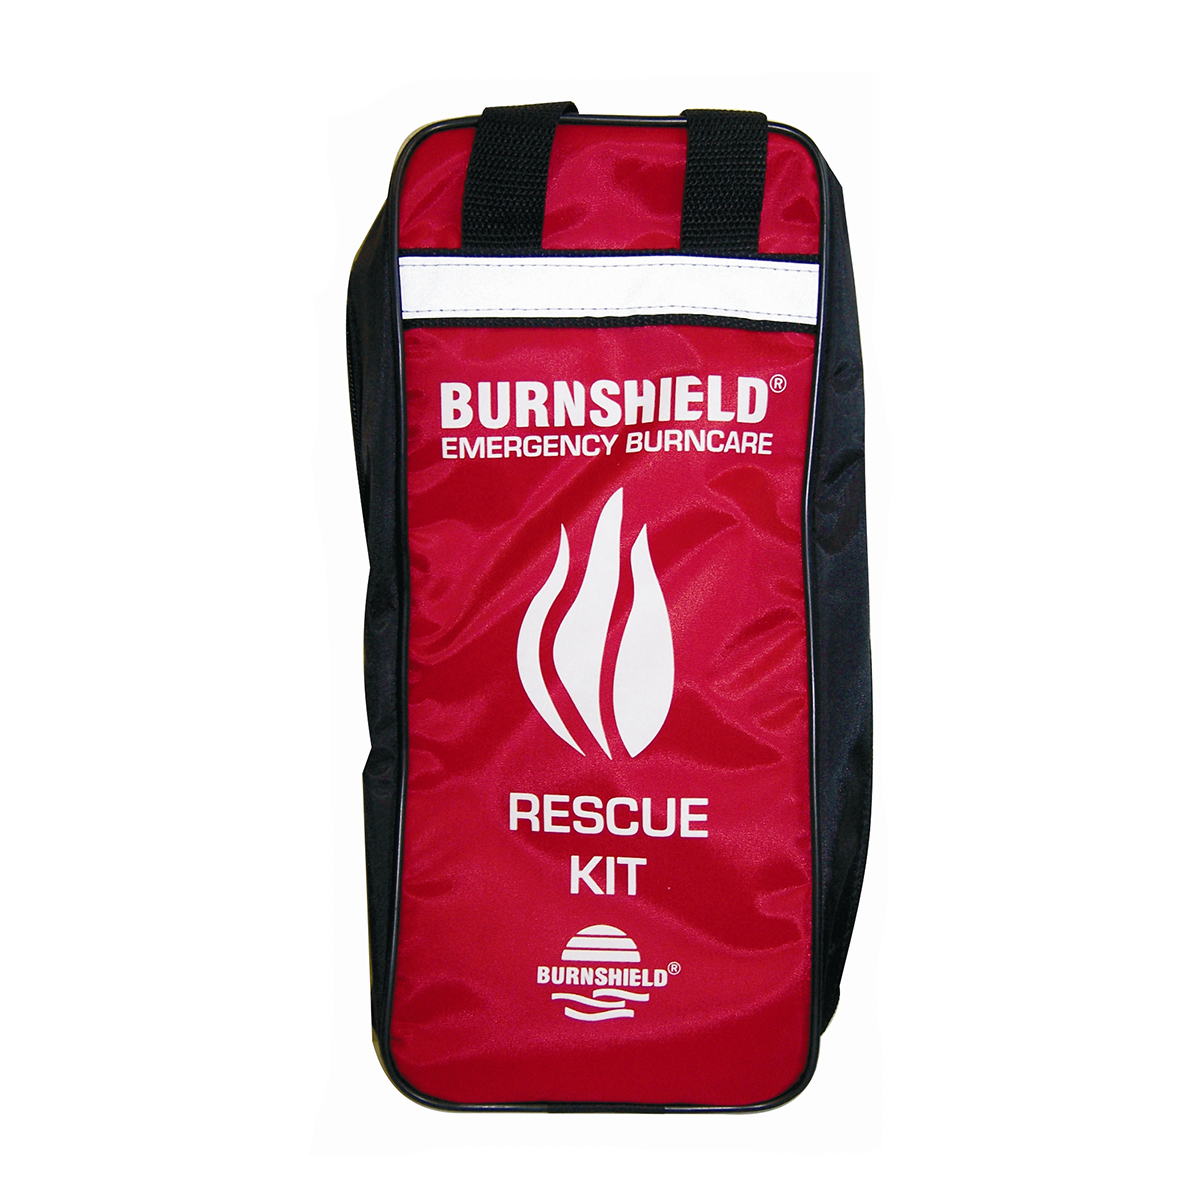 Burnshield® Professional Emergency Trauma Rescue Kit for Burns